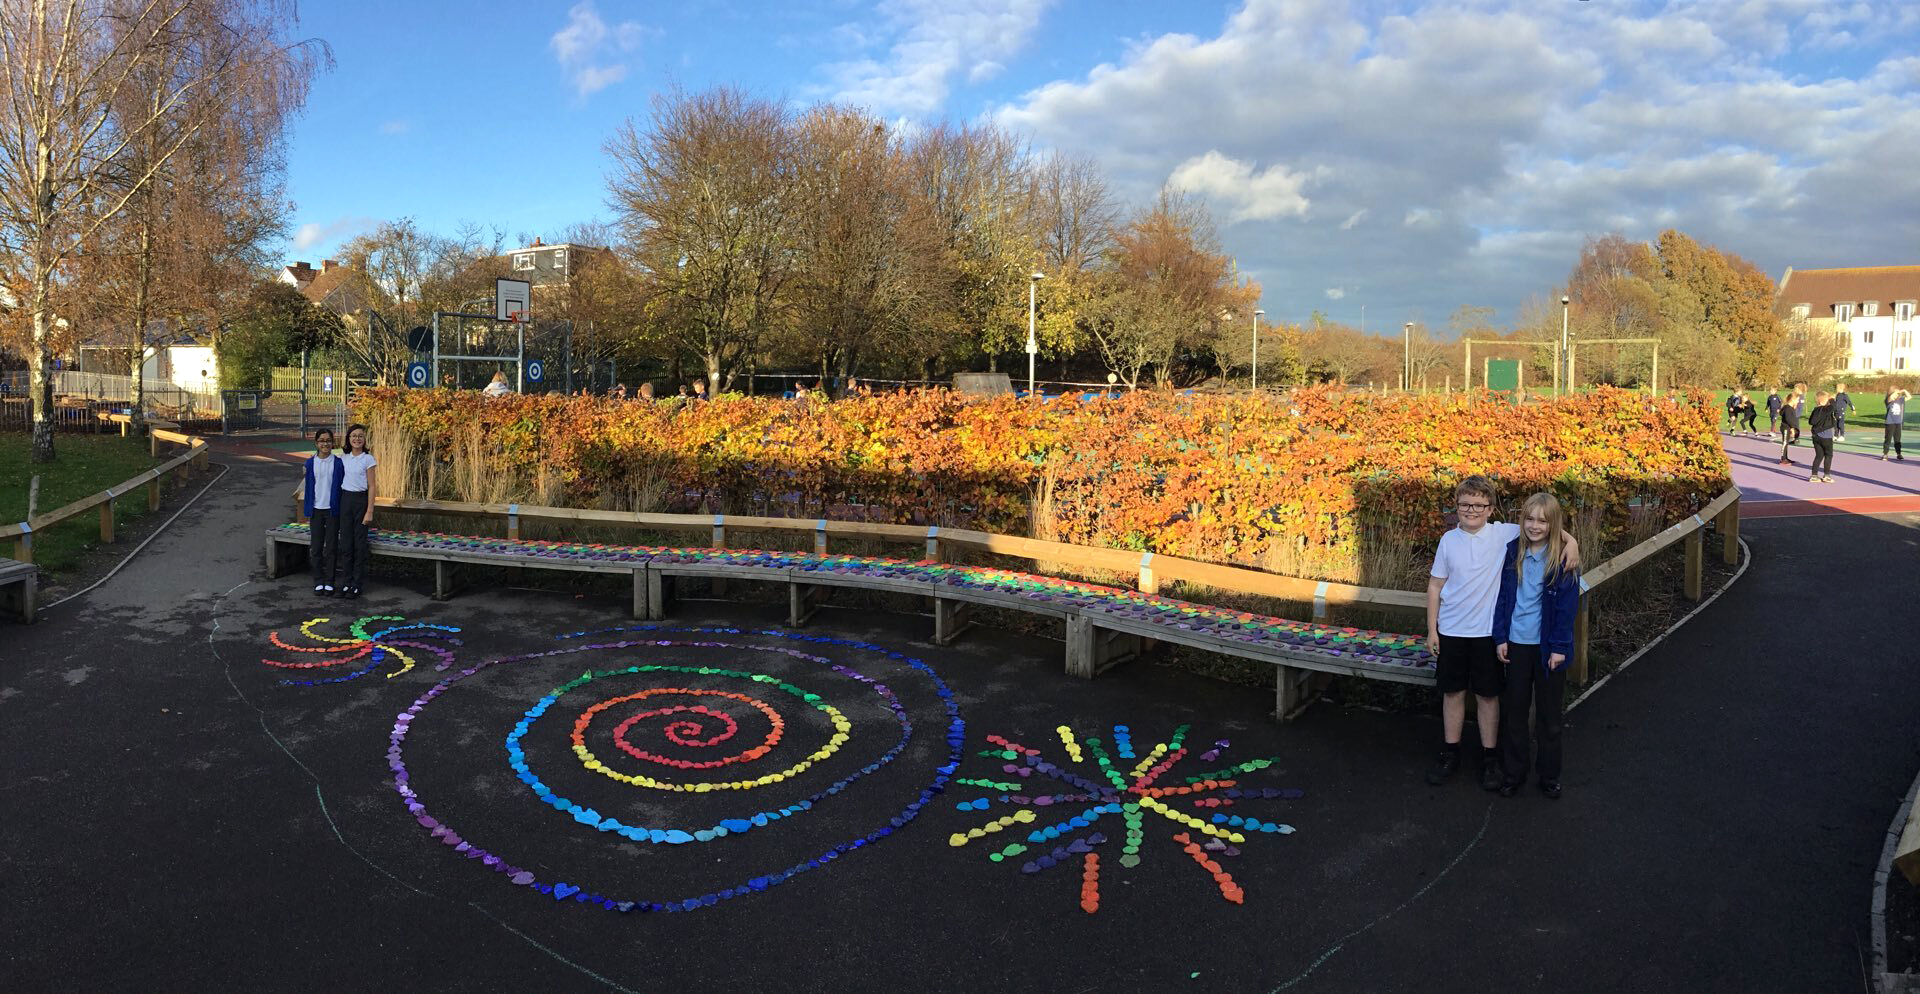 BEACON Rise Primary School pupils have taken part in a collaborative art pr0ject with five other schools.